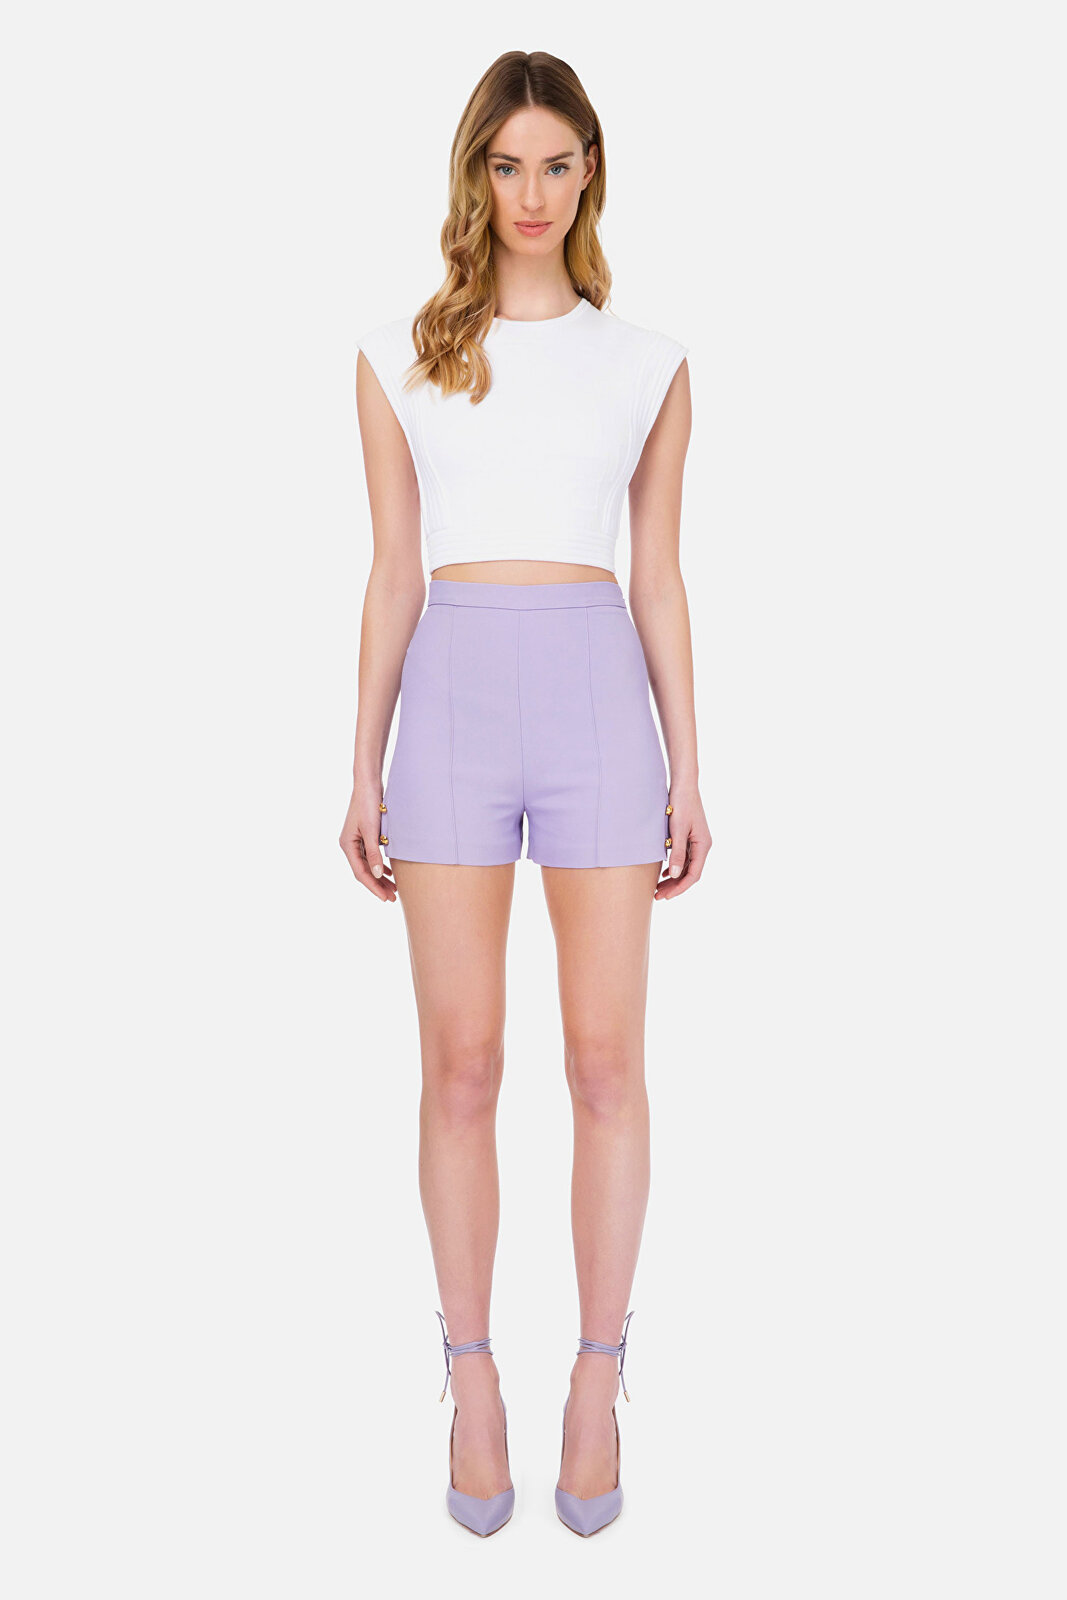 High Waisted Shorts With Side Slits - Elisabetta Franchi